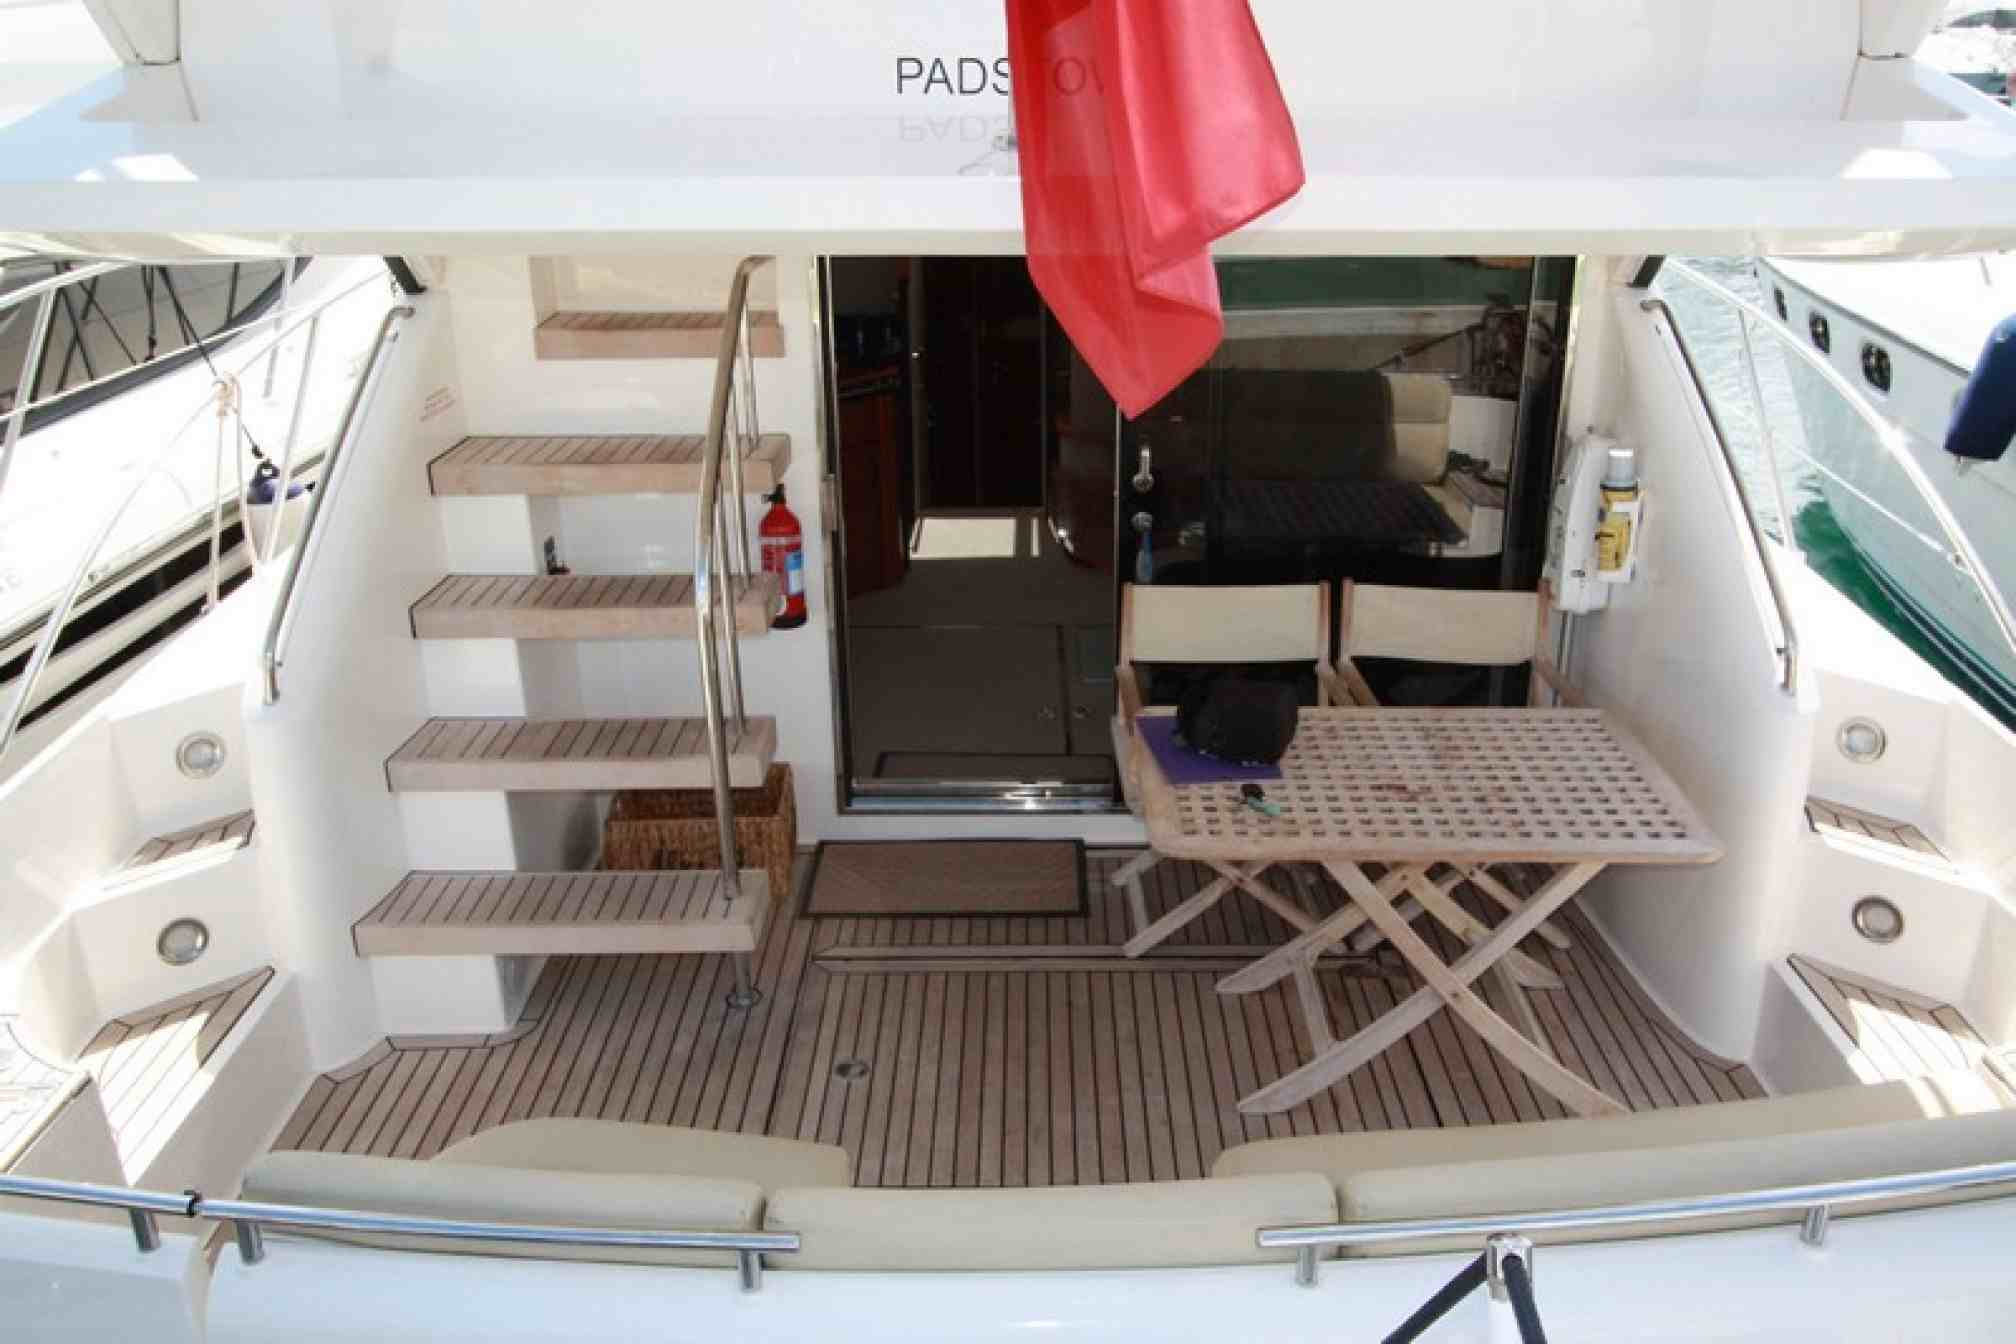 Fairline Phantom 46 yacht charter outdoors